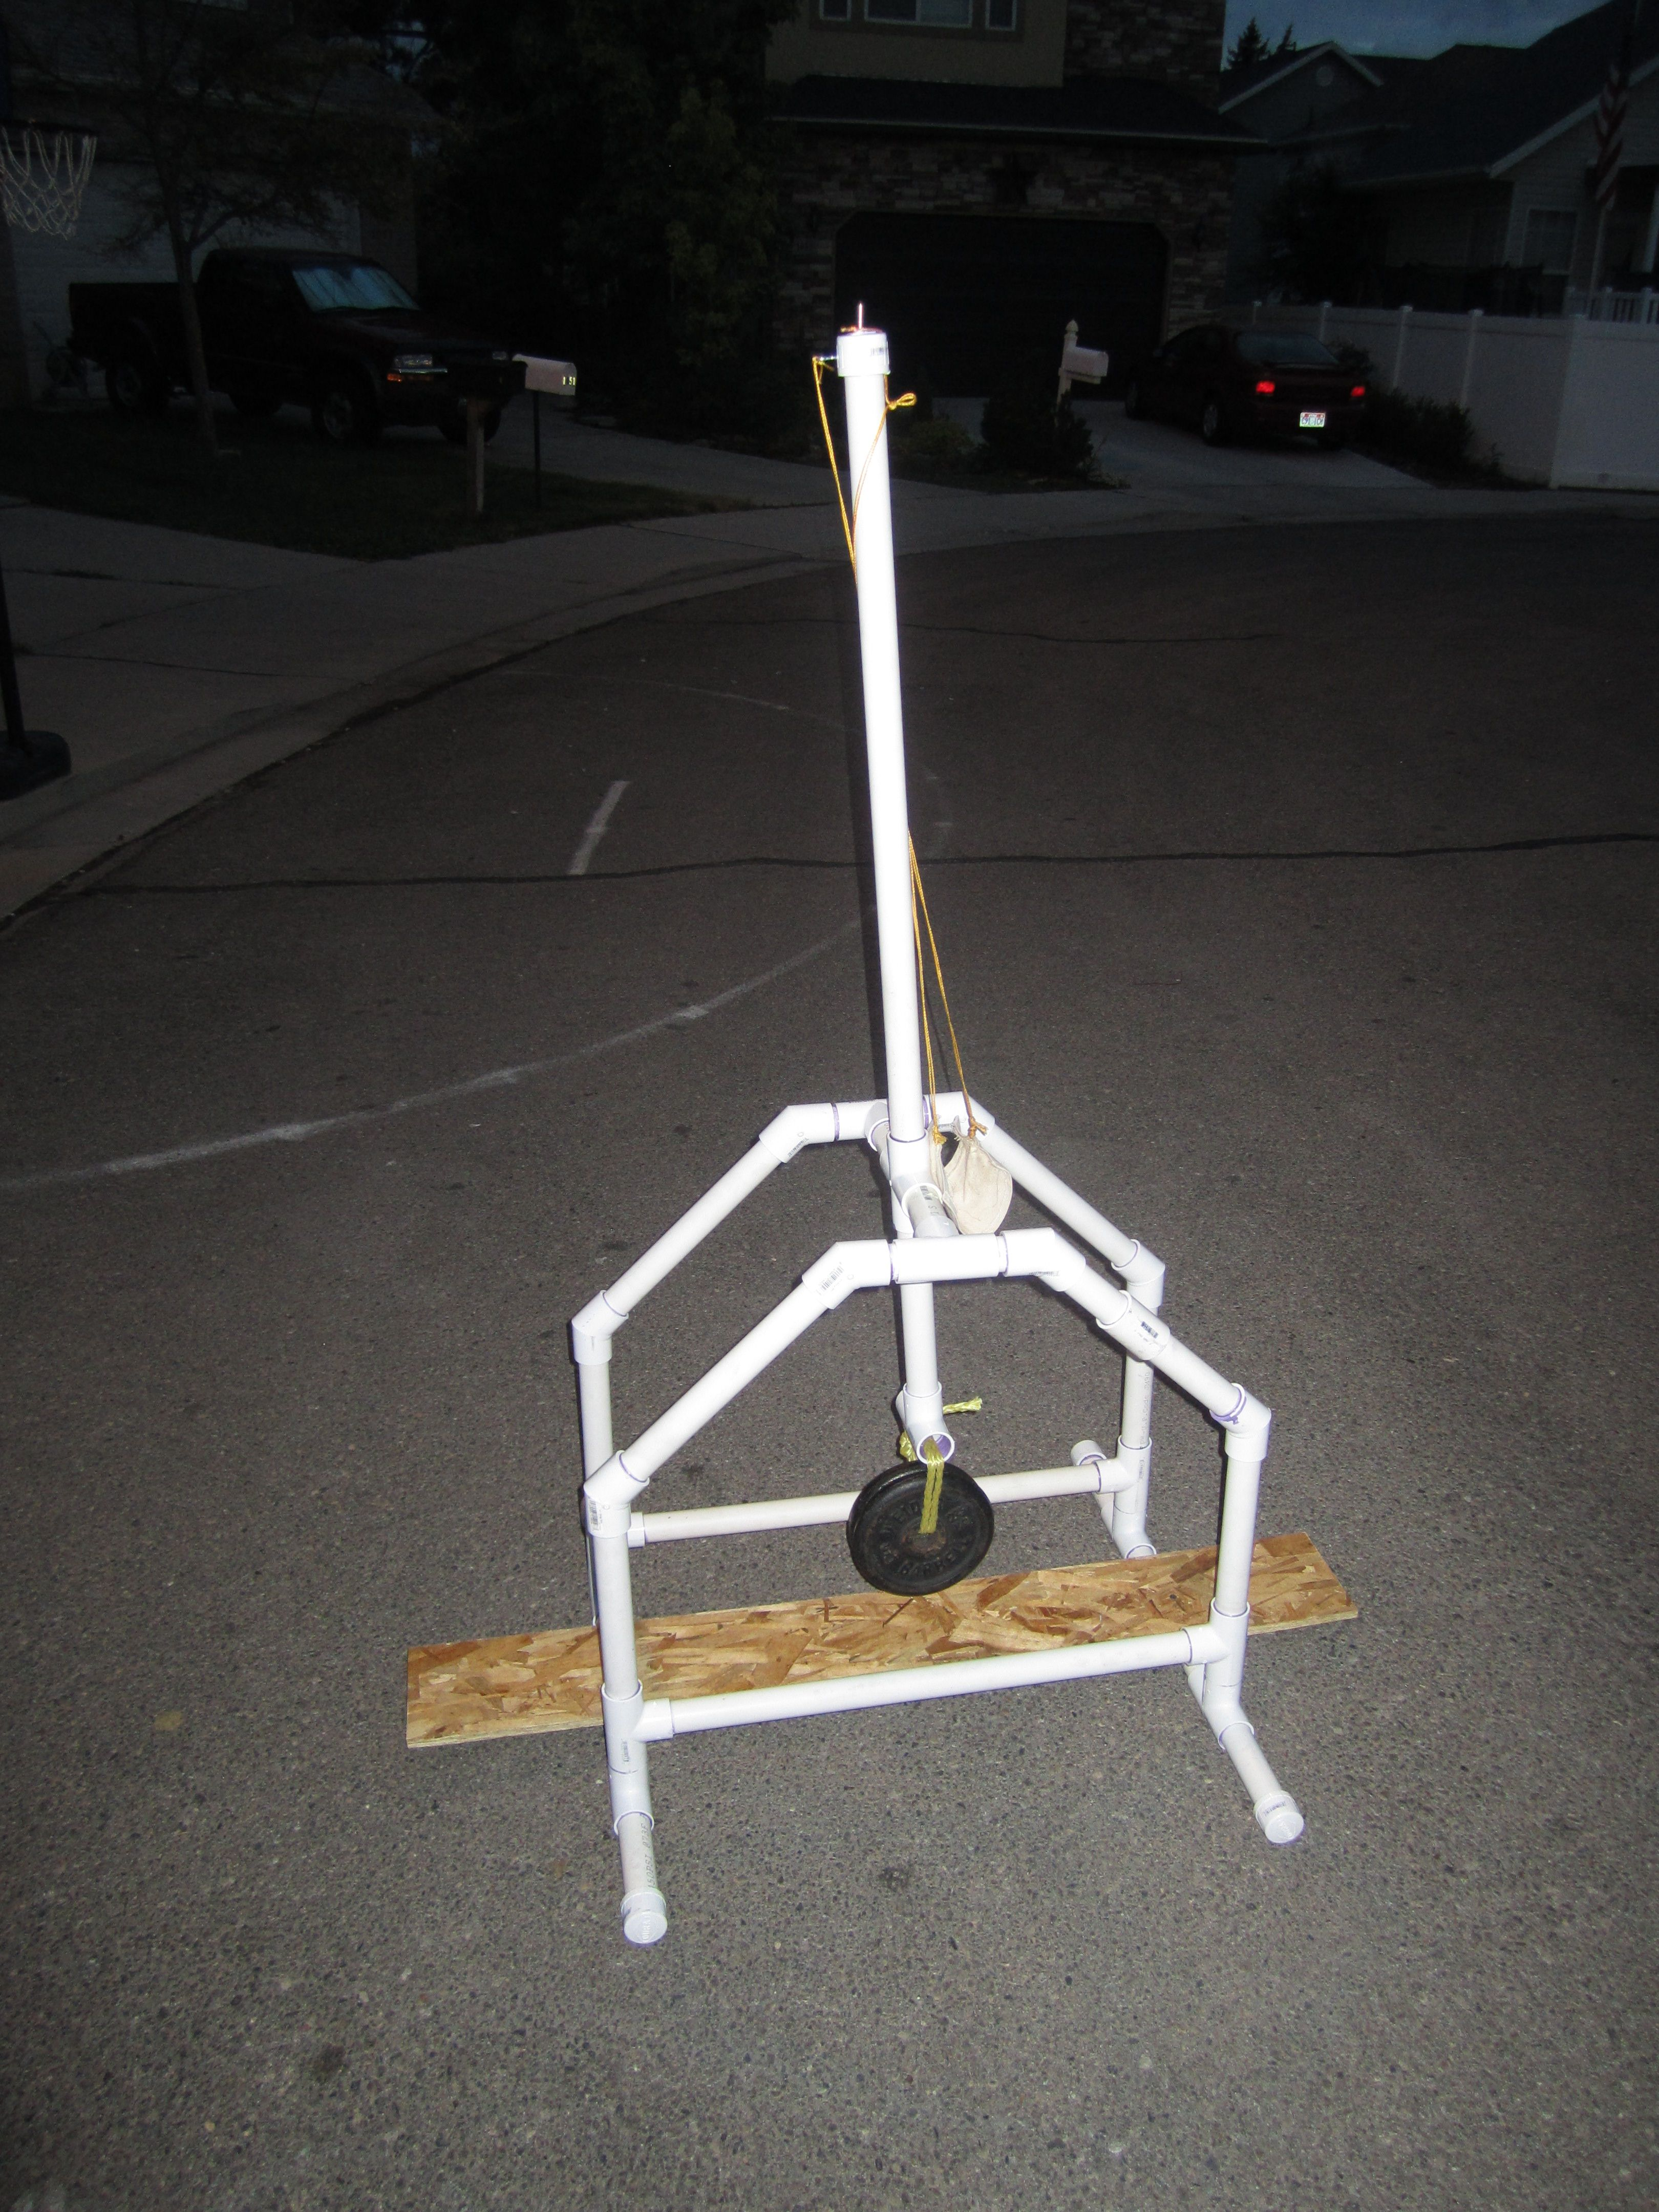 hight resolution of pvc trebuchet i built this trebuchet as a summer project the trebuchet arm length ratio is 3 1 the counterweight is 100 1